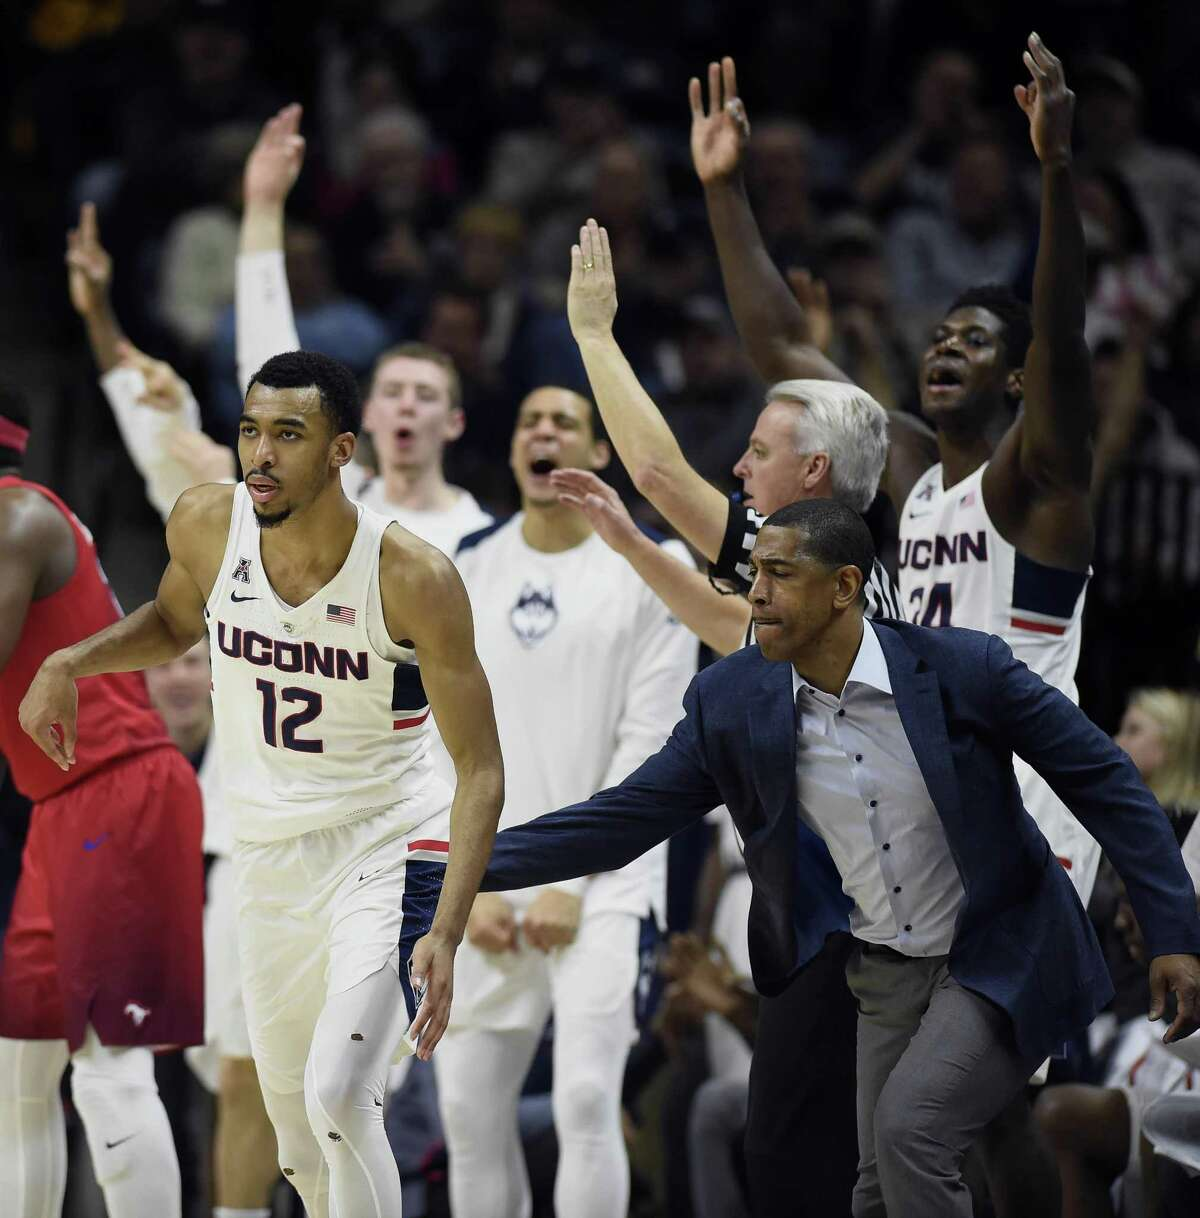 UConn head coach Kevin Ollie, right, cheers on Tyler Polley after Polley hit a three pointer during the second half against SMU on Jan. 25 in Storrs.